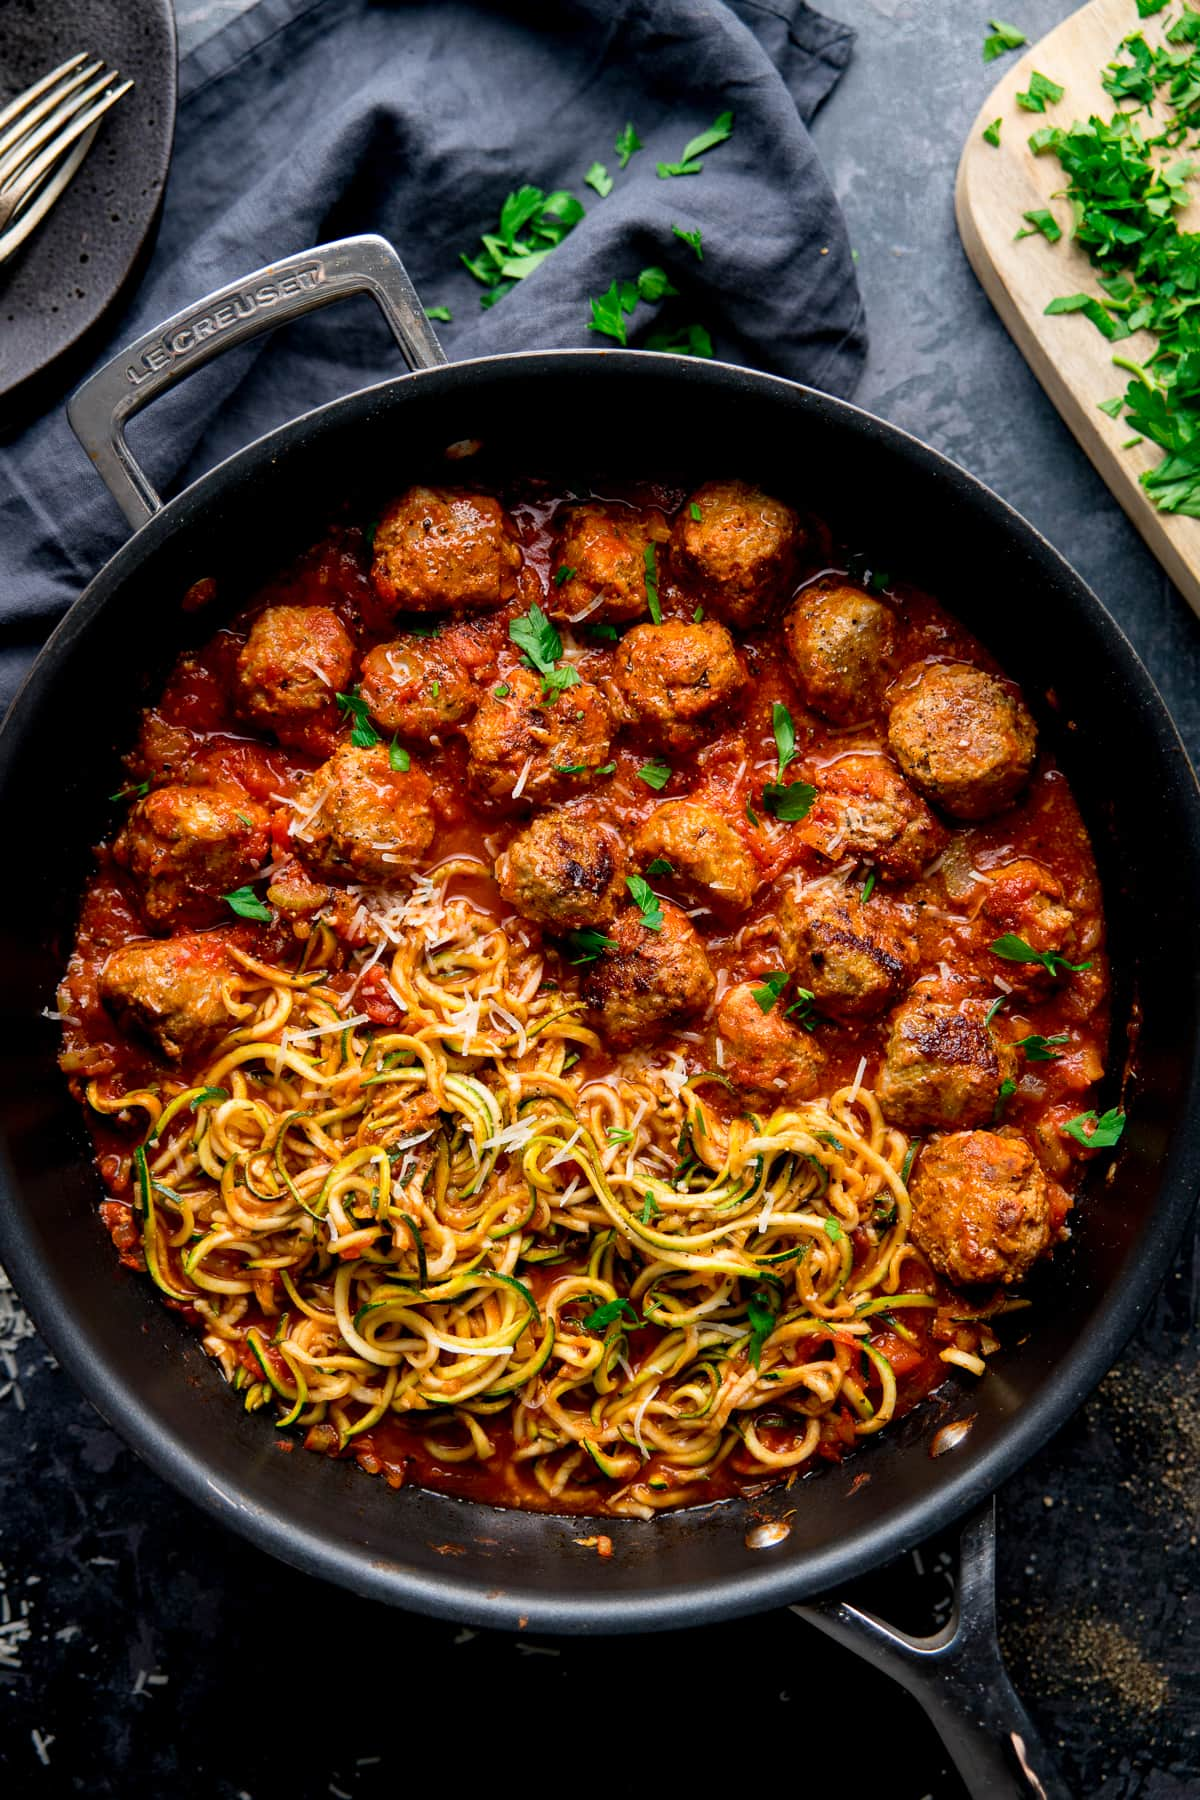 Turkey meatballs and courgetti in a pan topped with parsley, on a dark background.